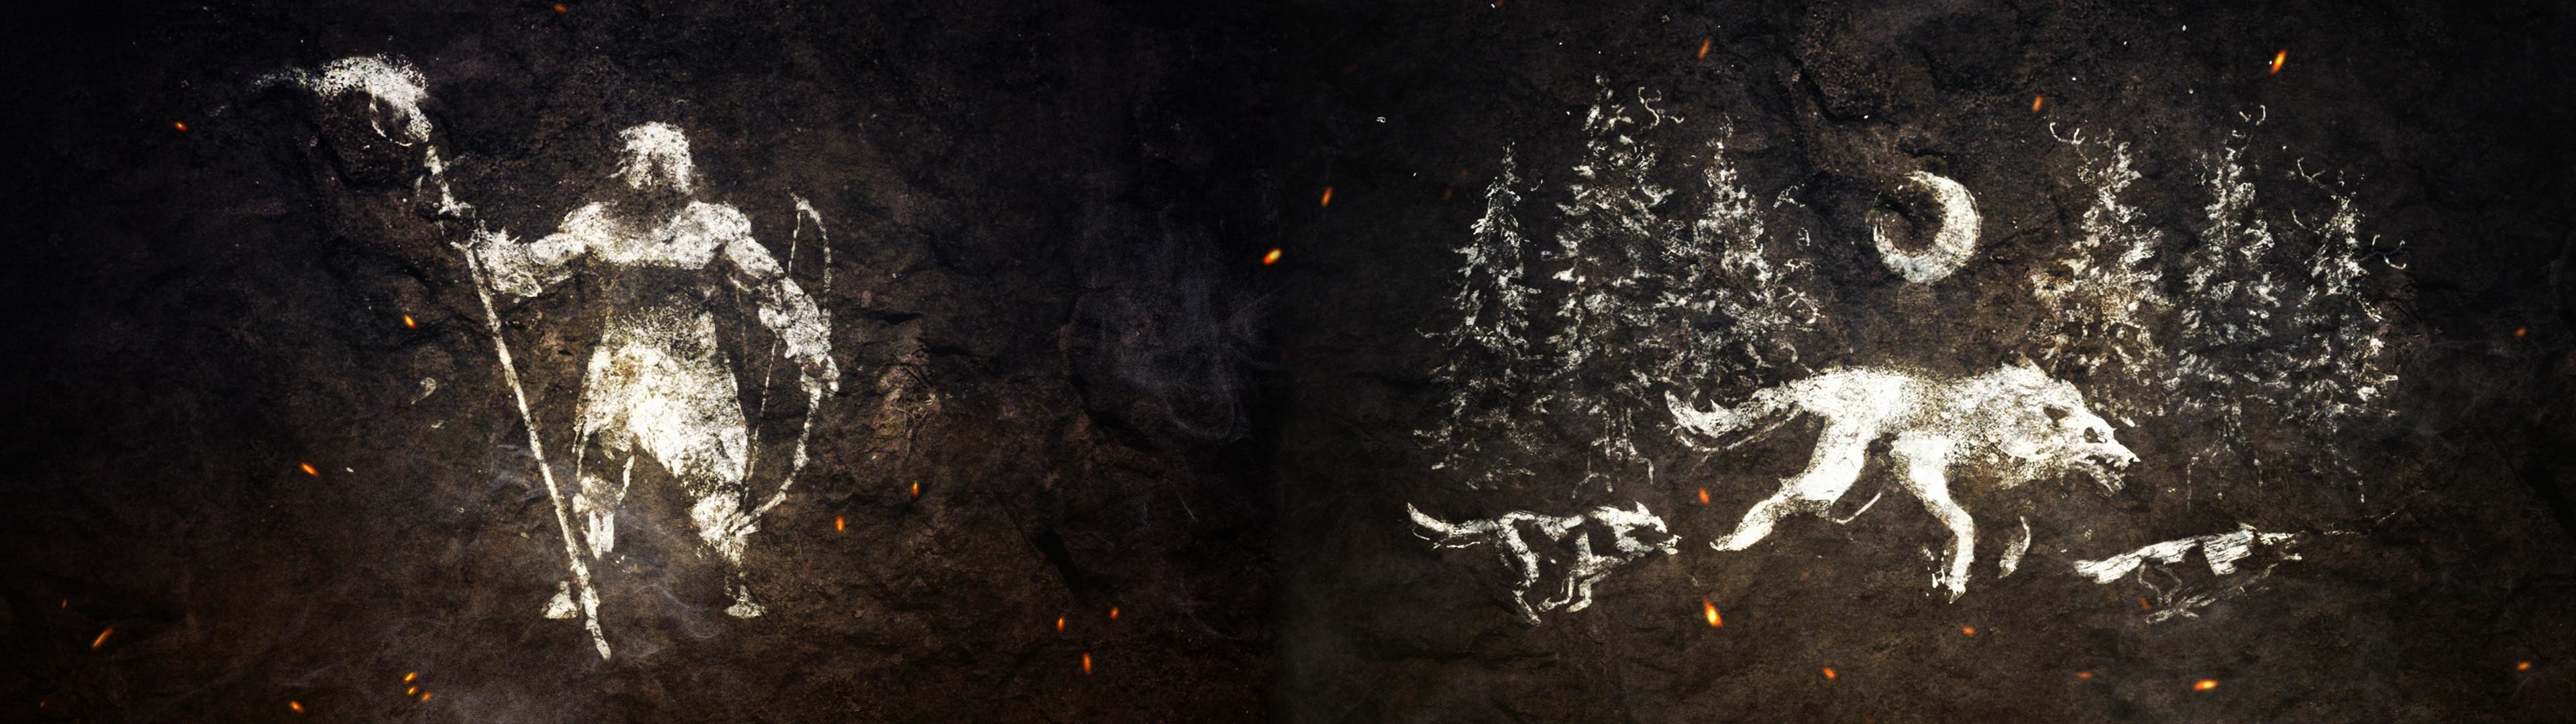 Made a FarCry: Primal Dual Monitor Wallpaper [3840×1080]